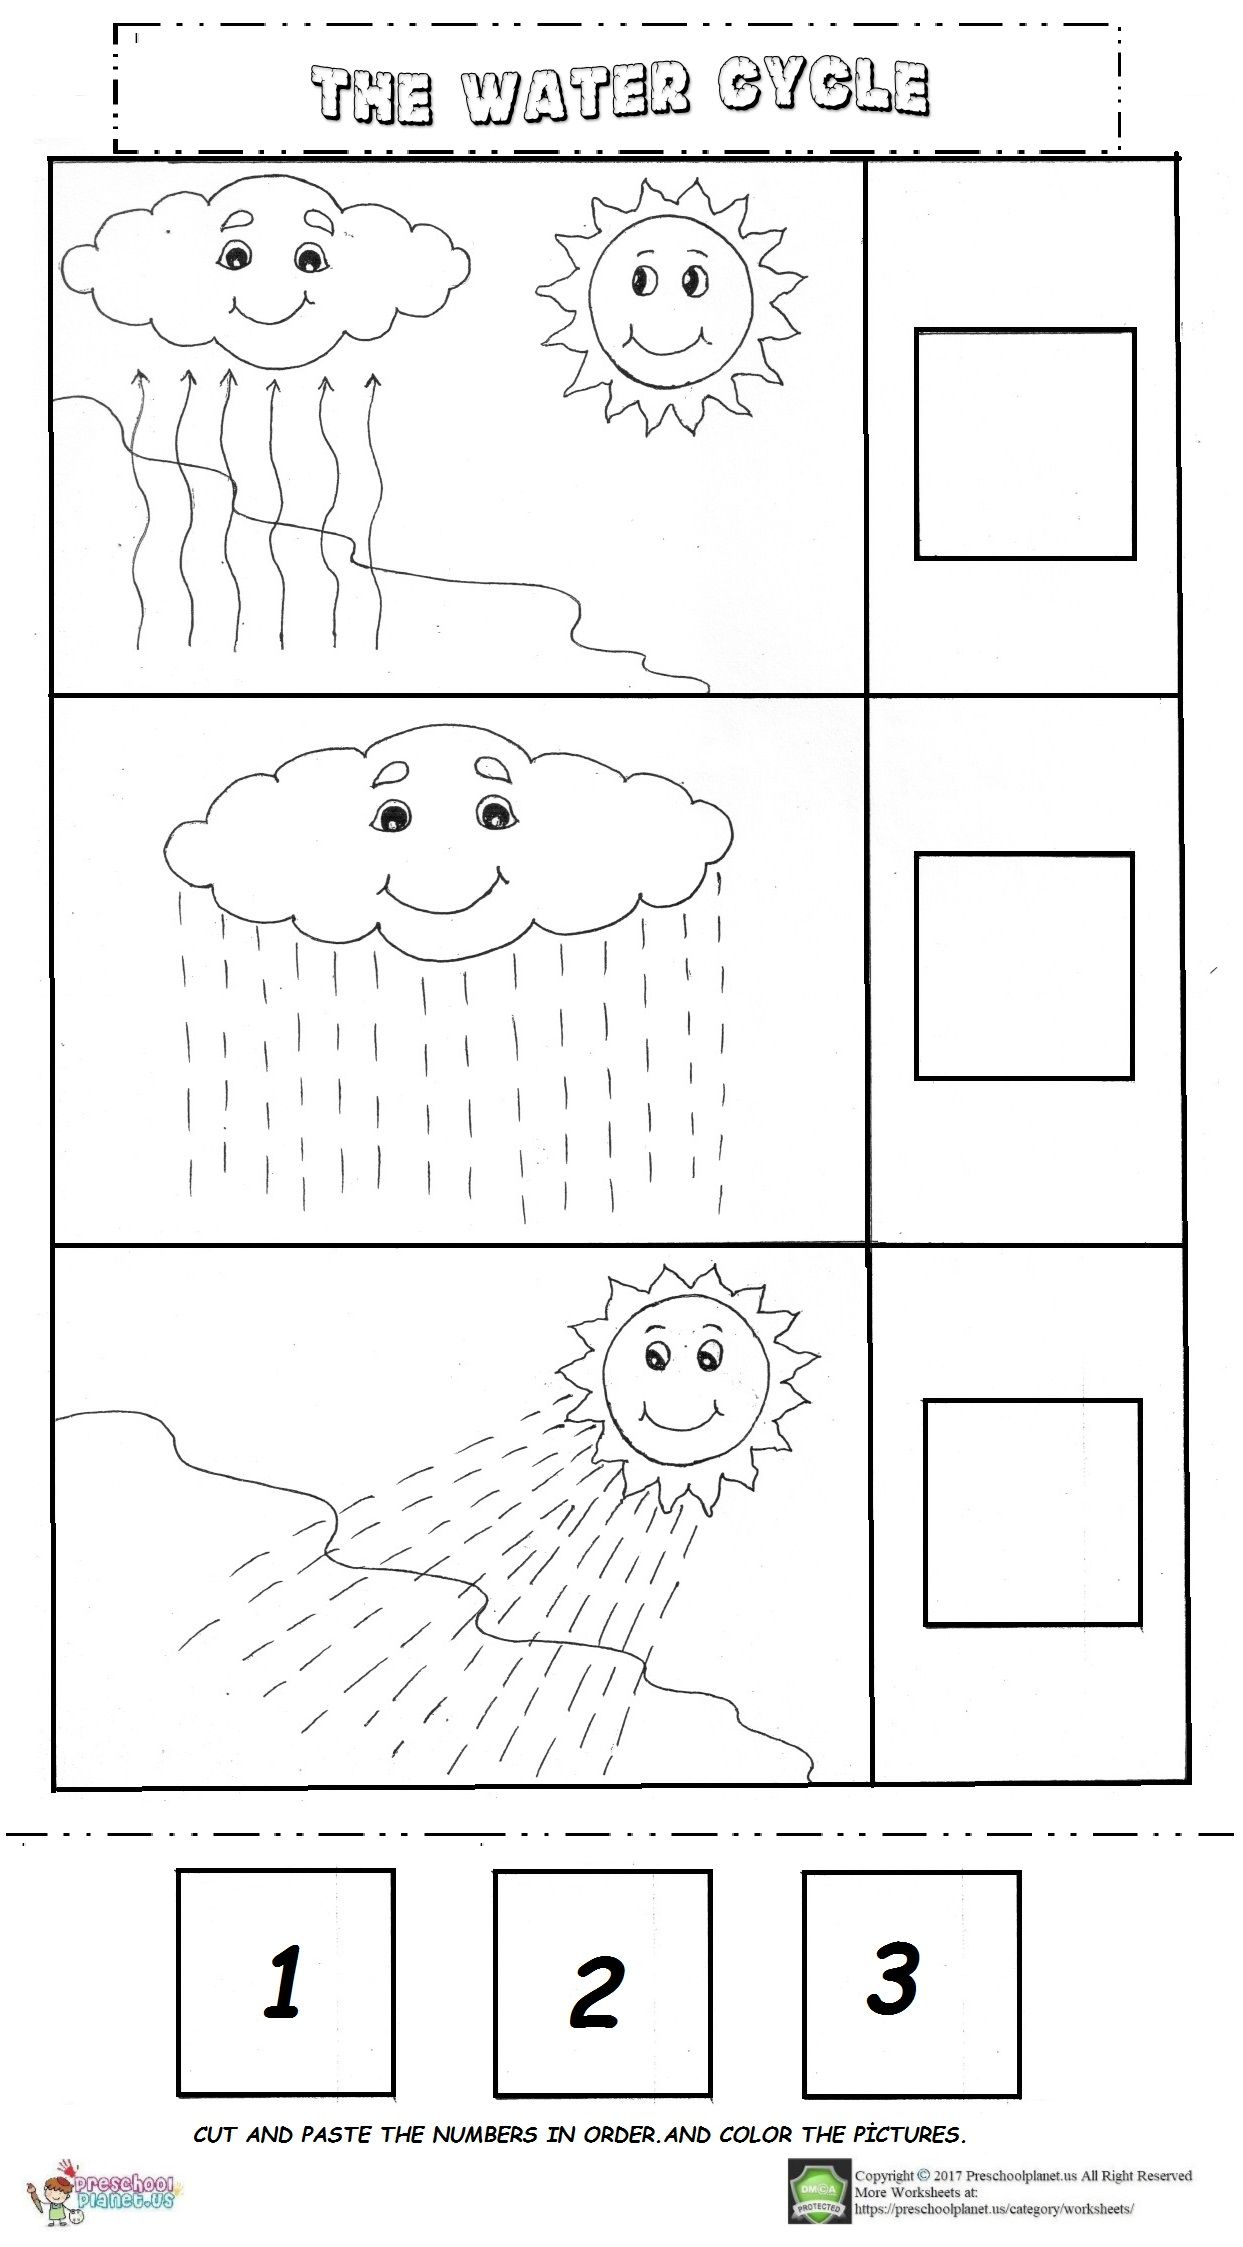 The Water Cycle Worksheet Water Cycle Water Cycle Activities